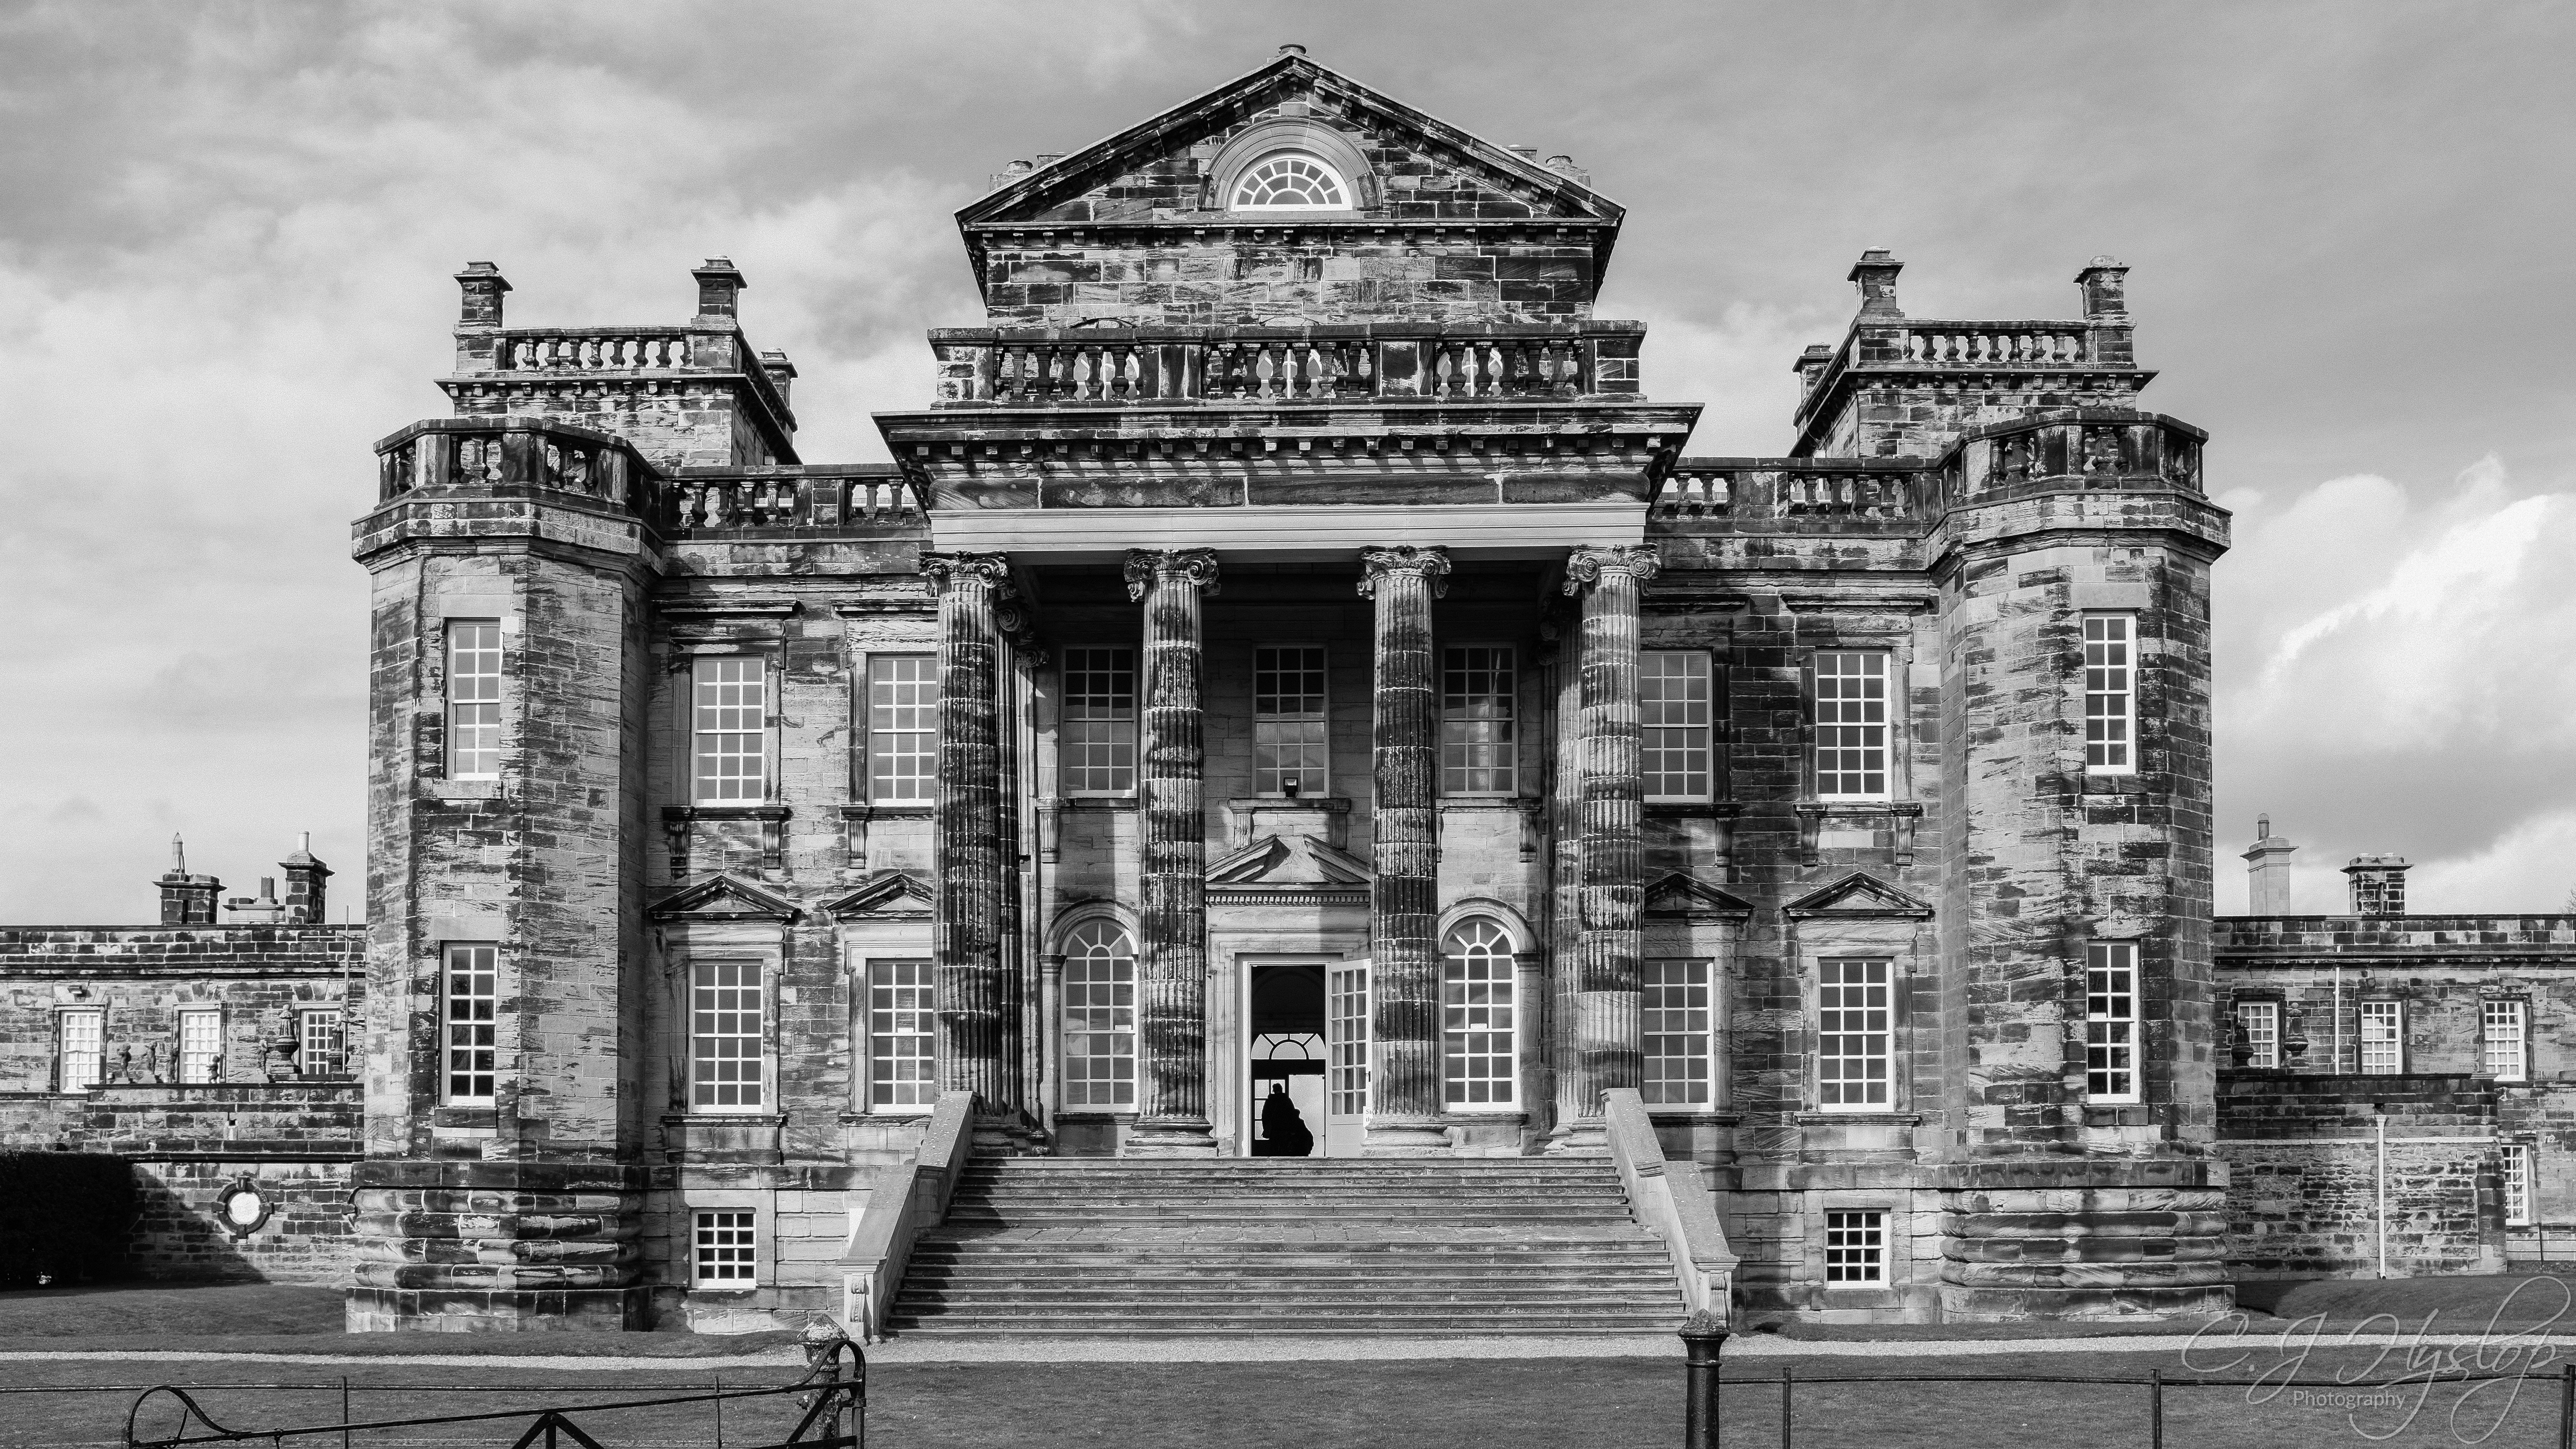 Seaton Delaval Hall – February 2019